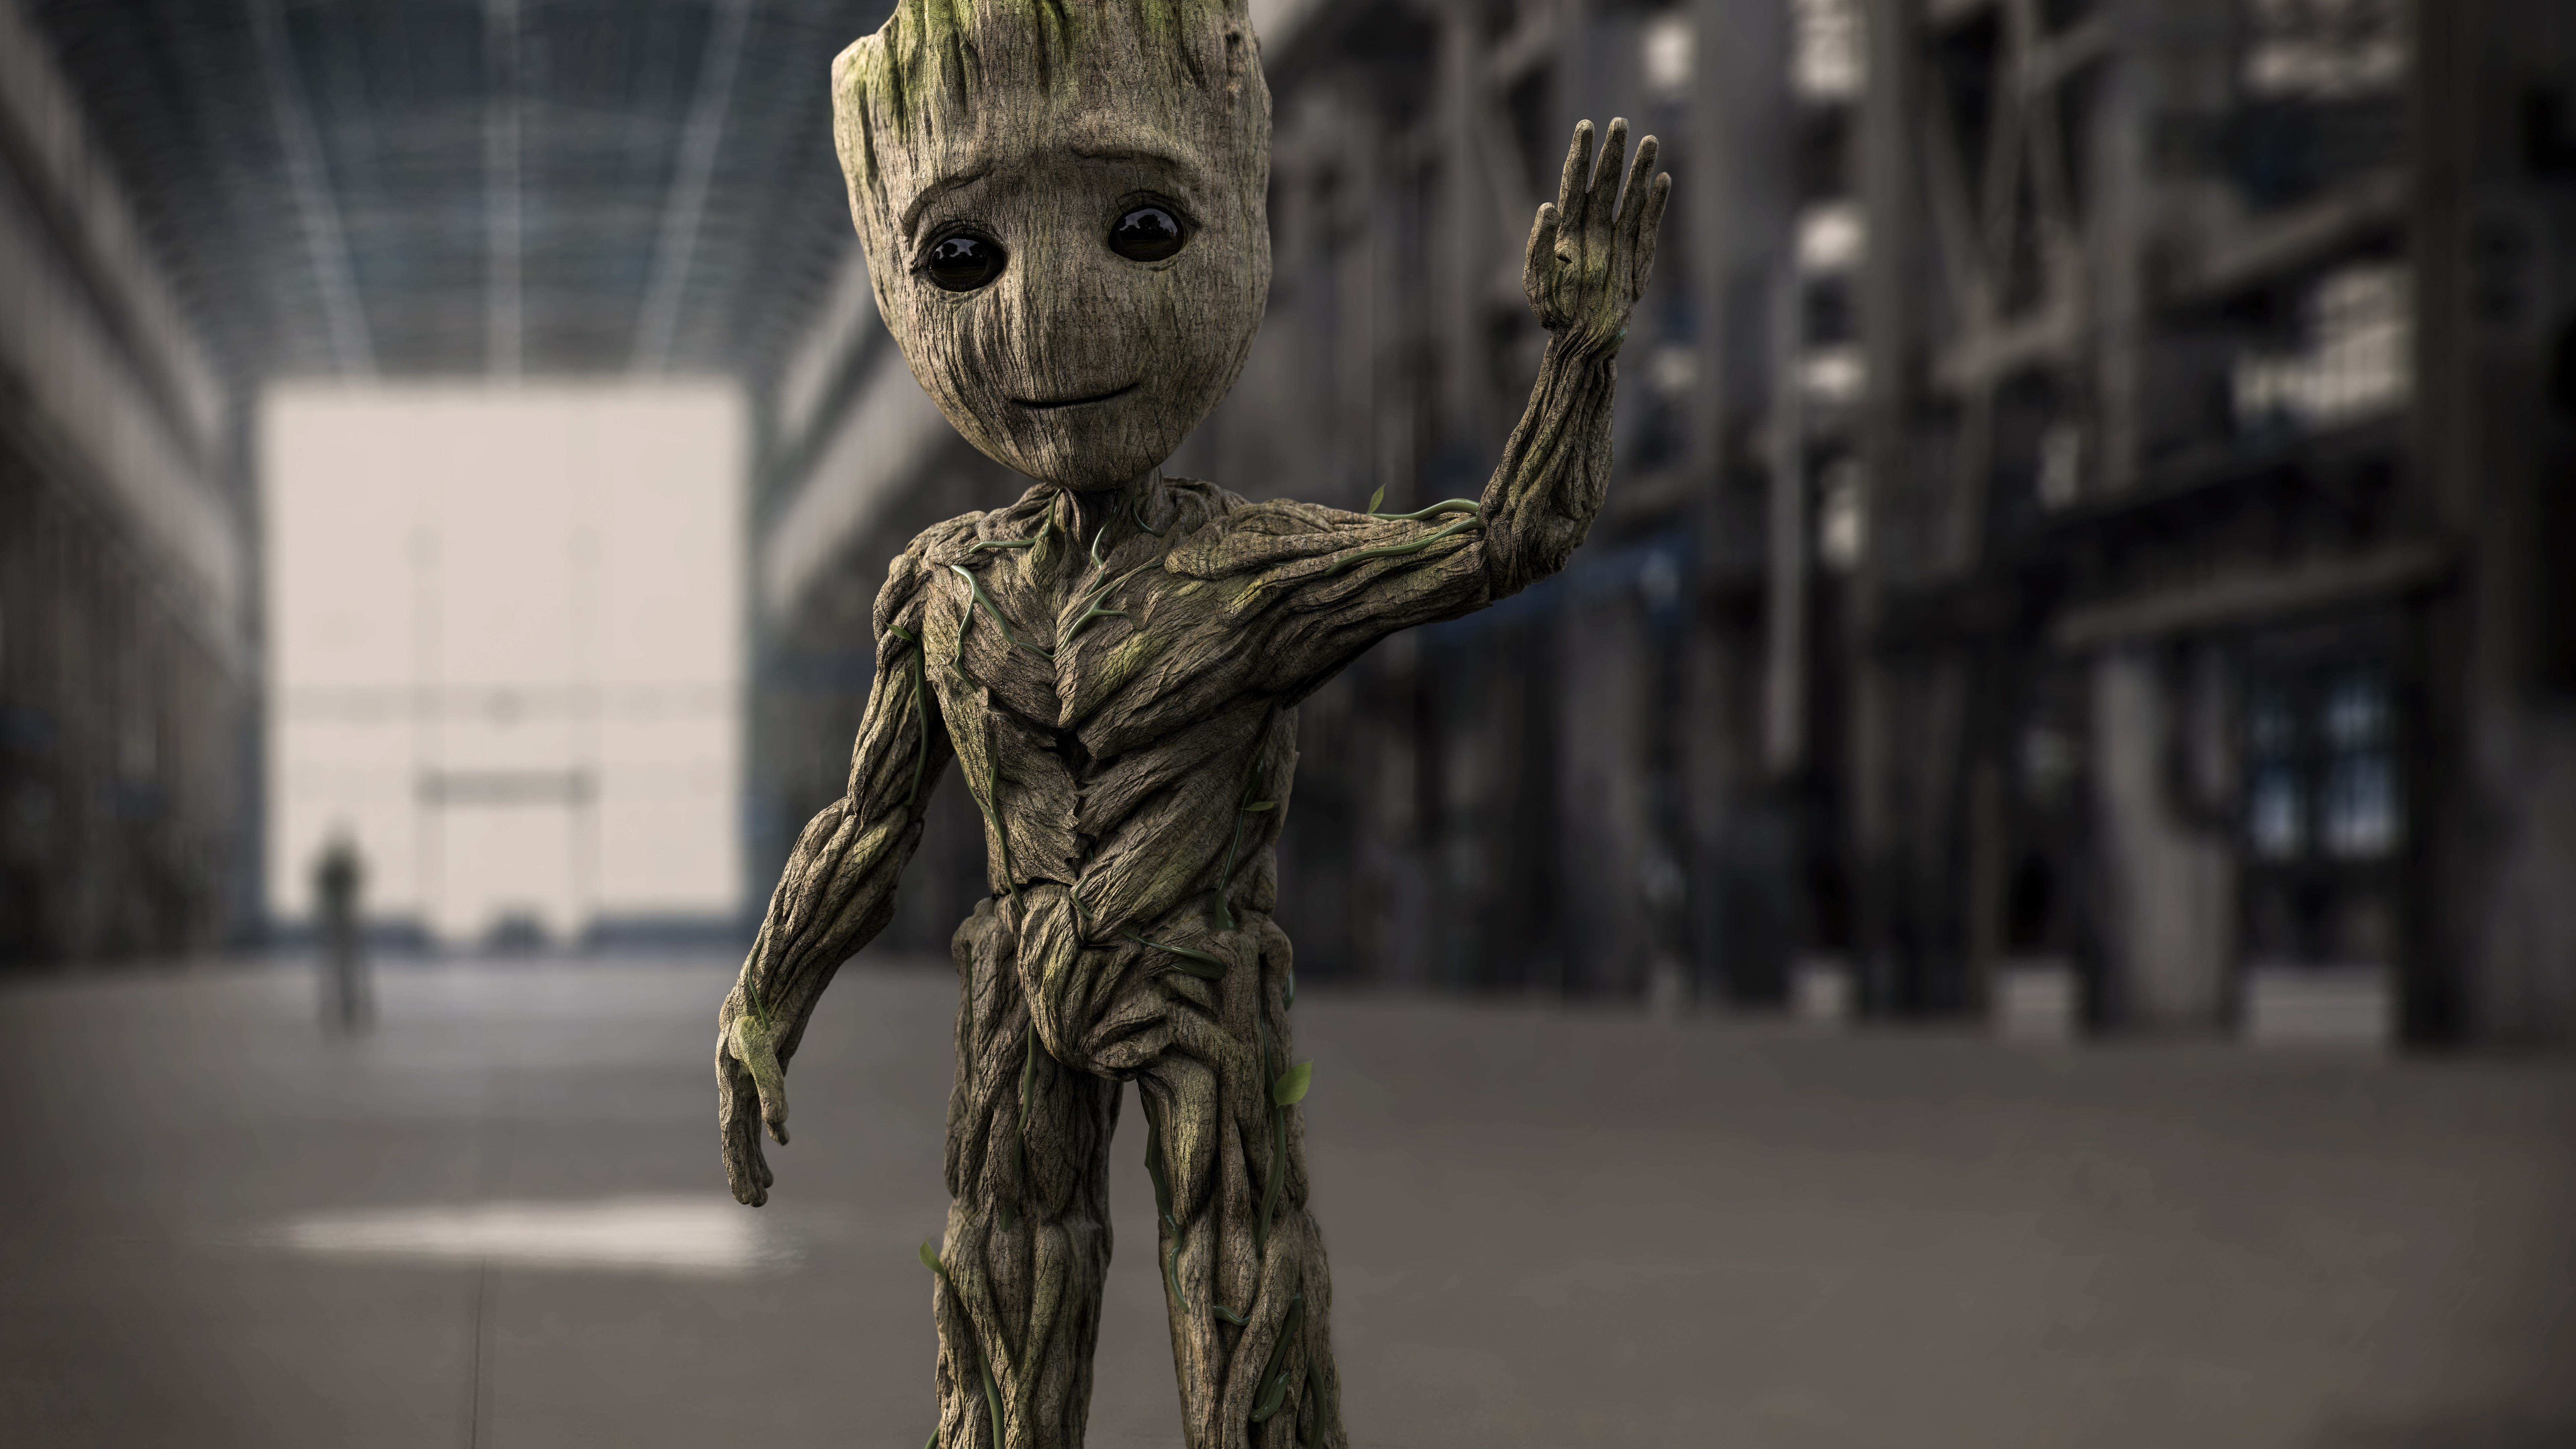 Baby Groot Guardians Of The Galaxy 2 Wallpaper Posted By Ethan Johnson